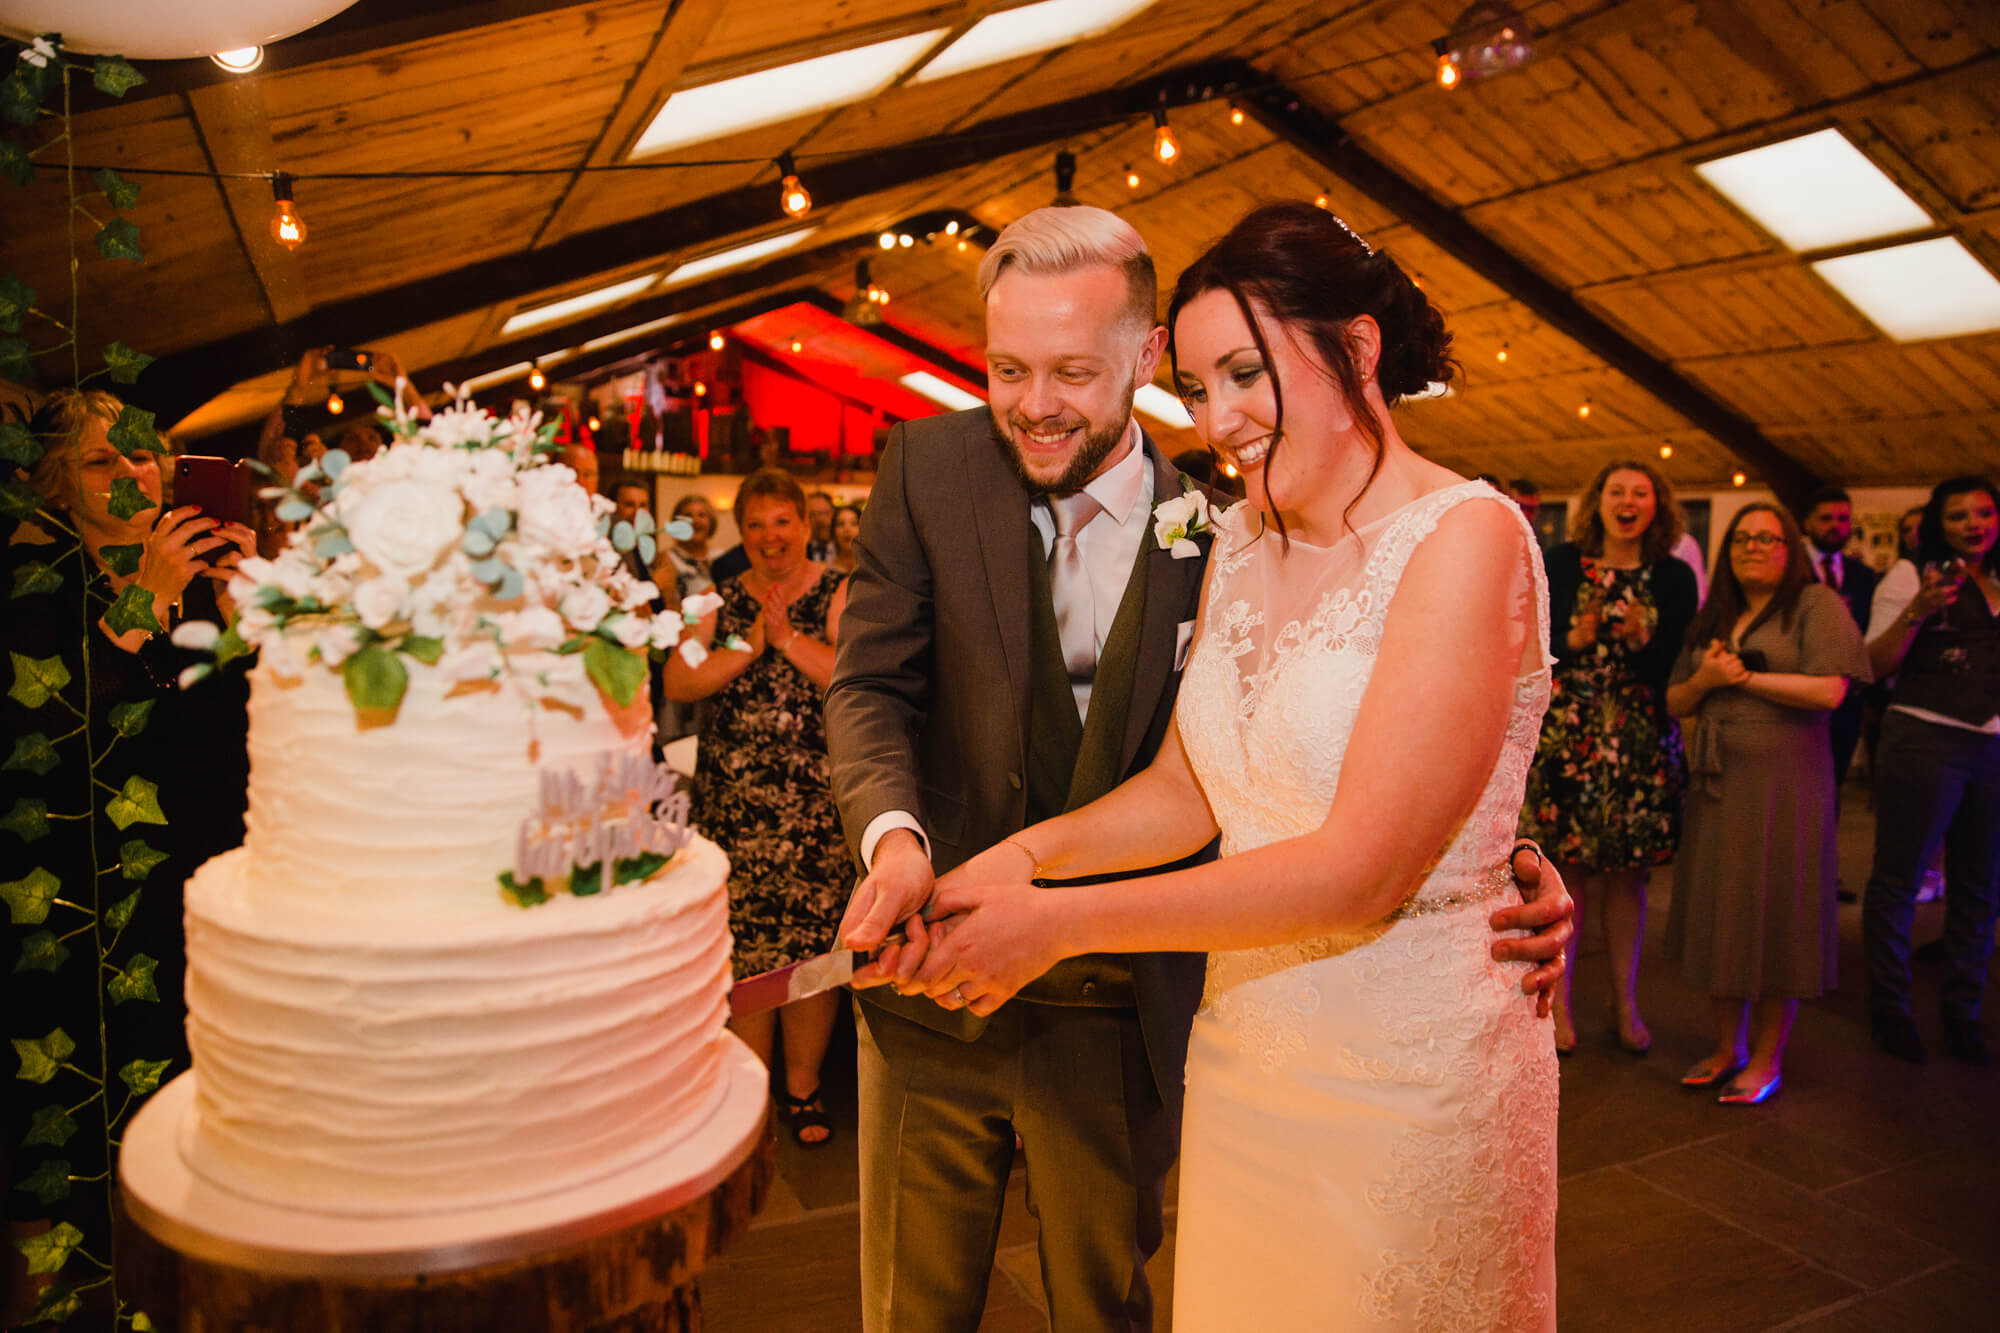 newly married couple cutting into wedding cake surrounded by family and friends